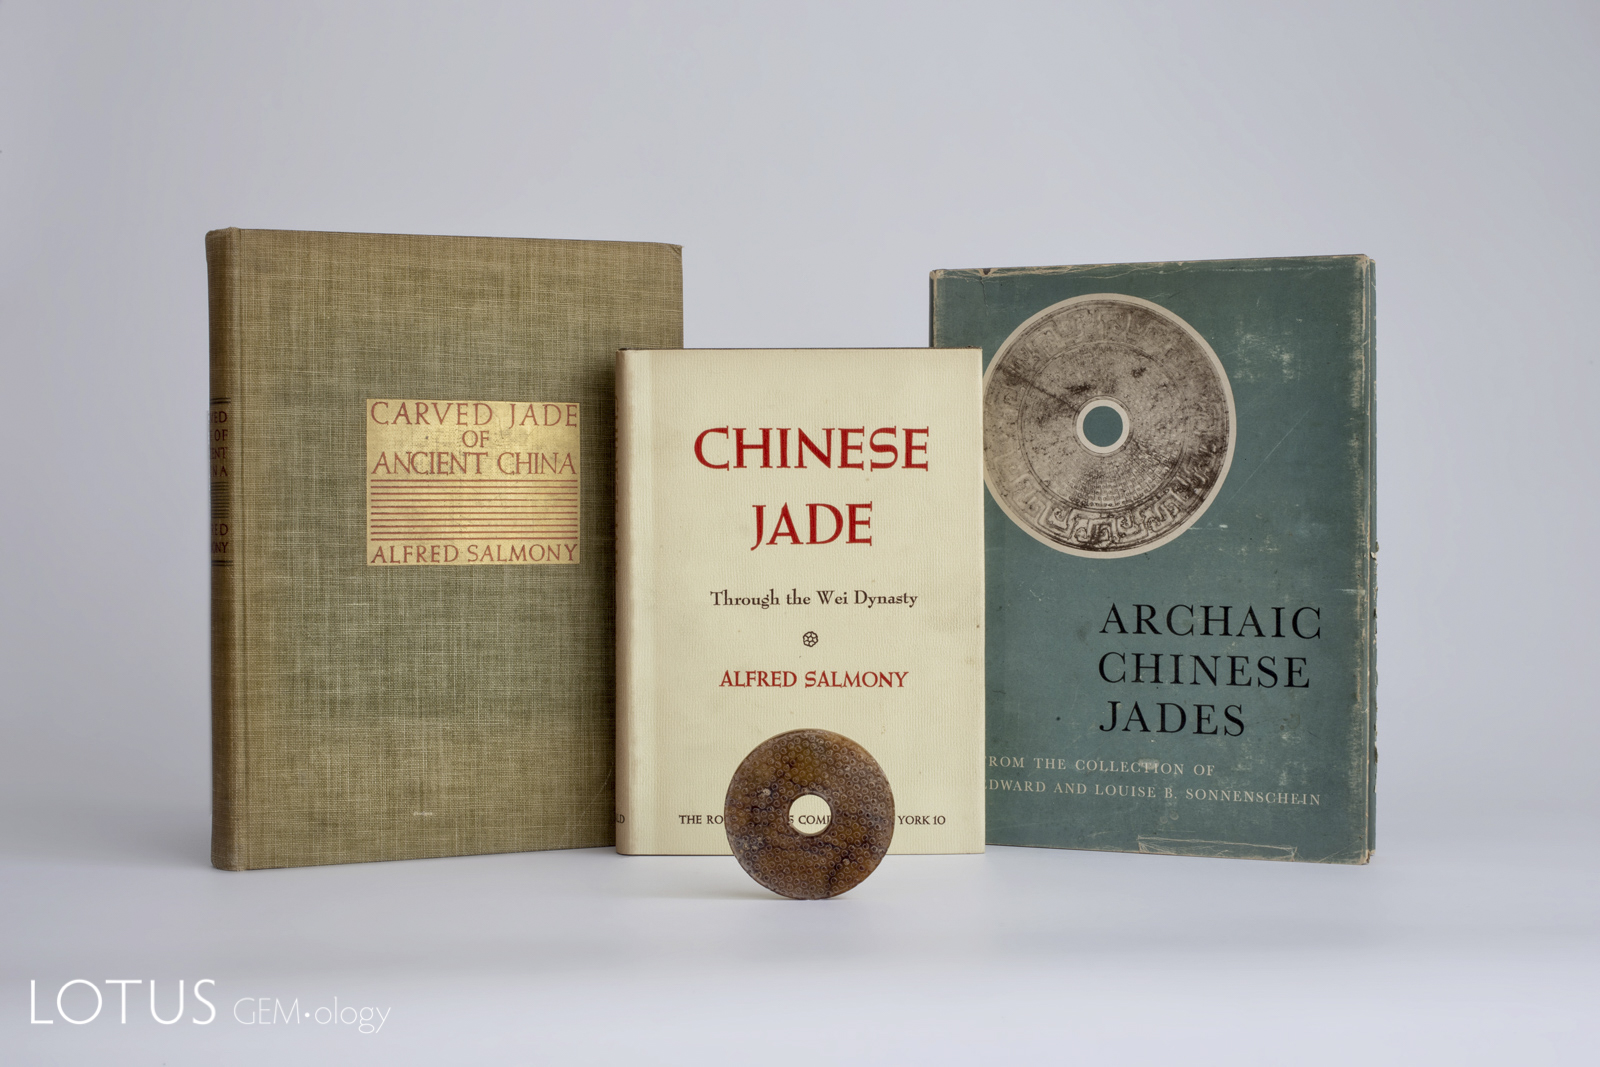 Alfred Salmony's three important books on jade from 1938, 1963 (published posthumously) and 1952, along with a modern replica of an archaic Chinese jade bi.